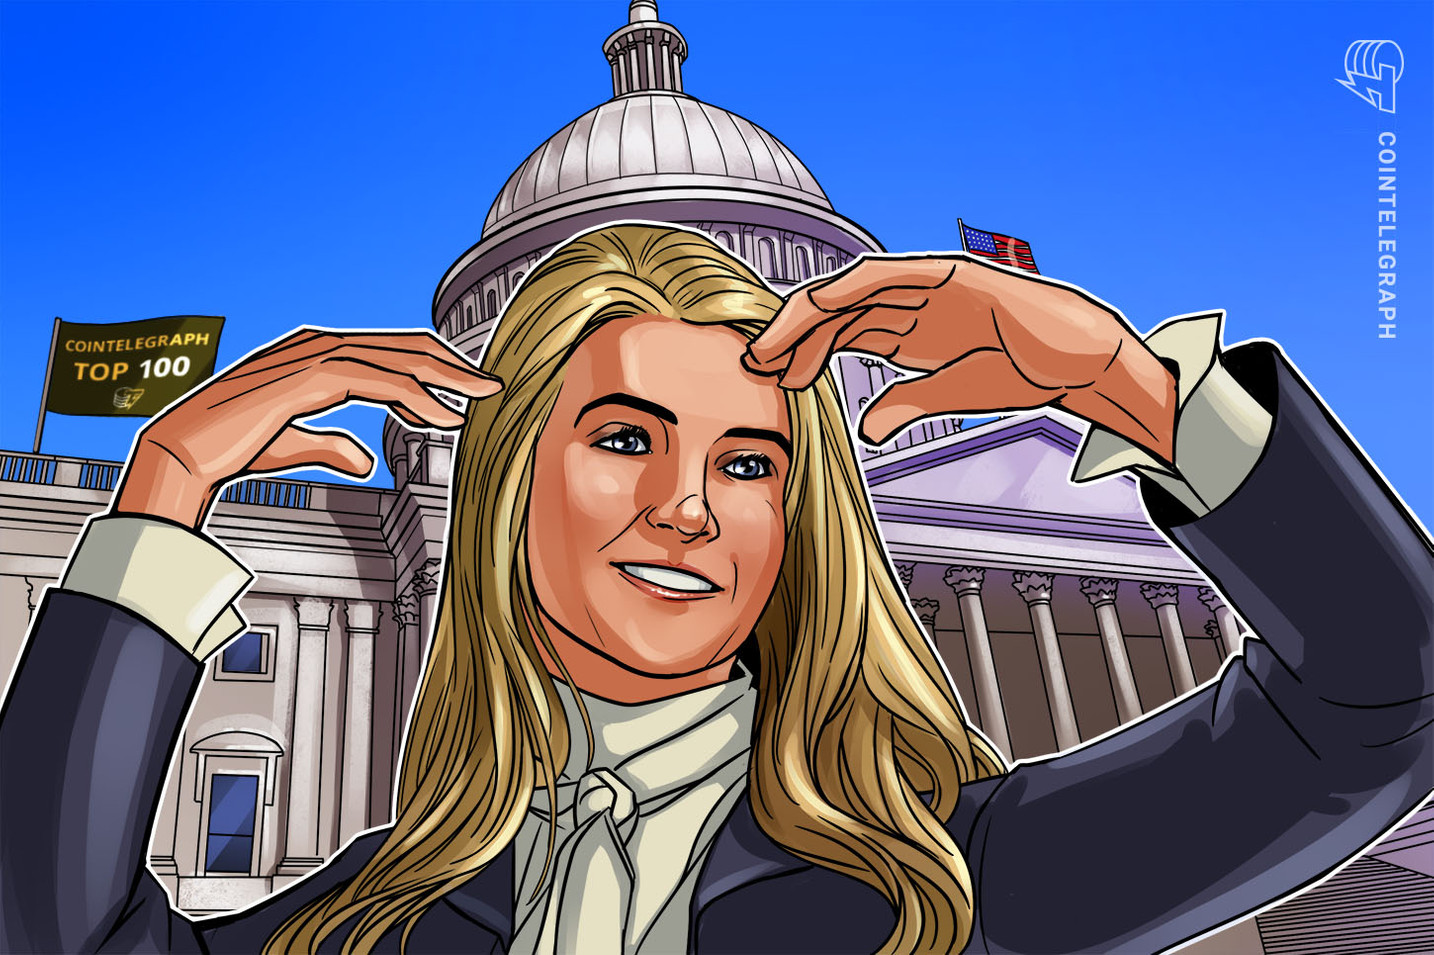 Bakkt to the Senate: How Loeffler Became One of Crypto's Most Influential